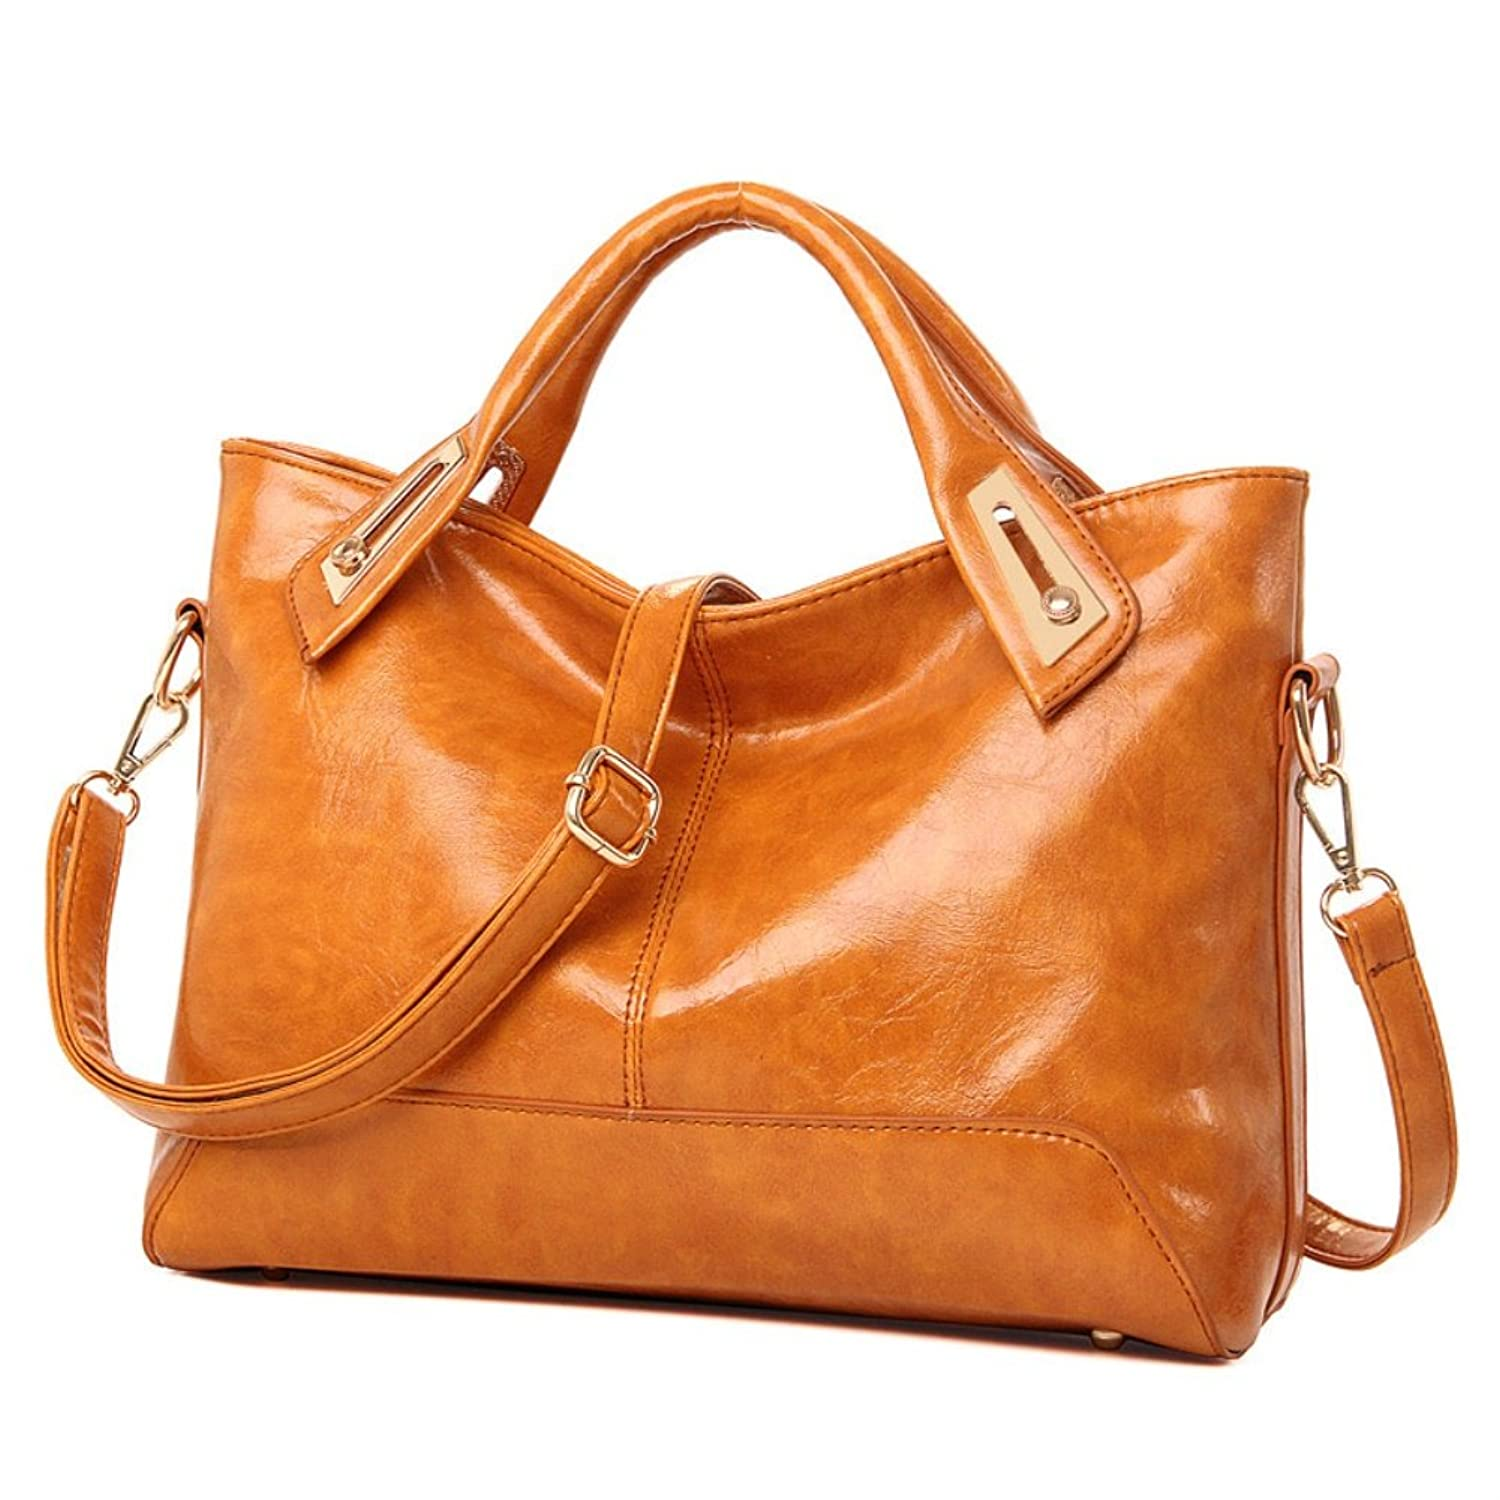 FCZERO HB10047 PU Leather Handbag for Women,Temperament & Youth Oil Wax Package - Gift